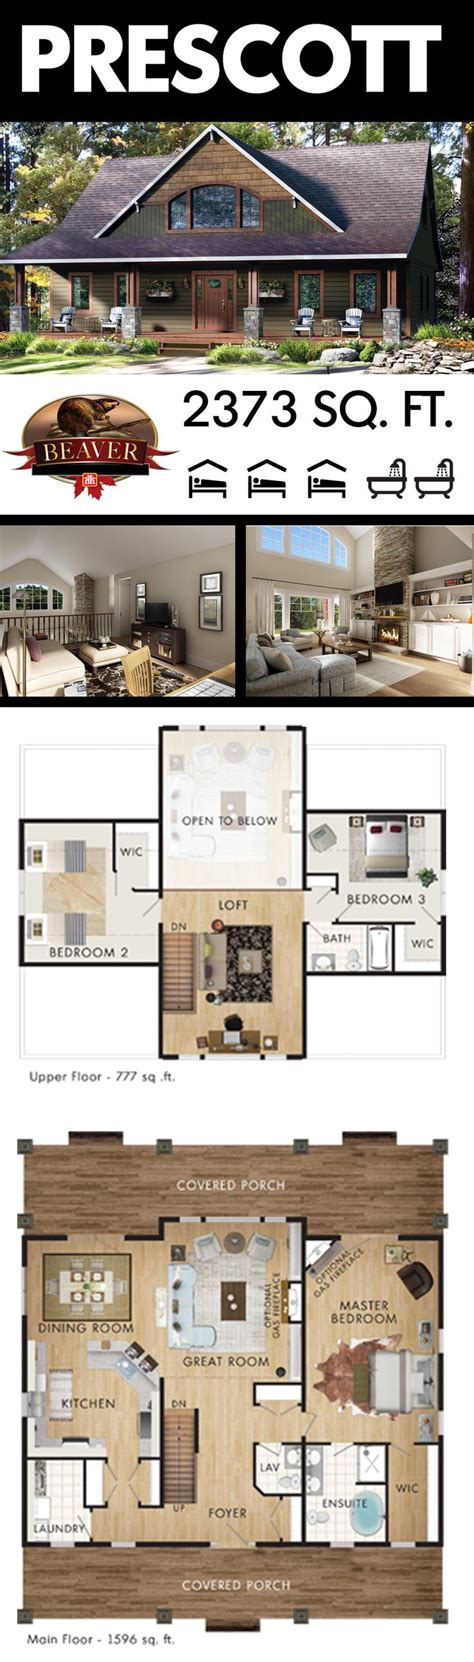 home hardware floor plans best beaver homes and cottages images on pinterest house